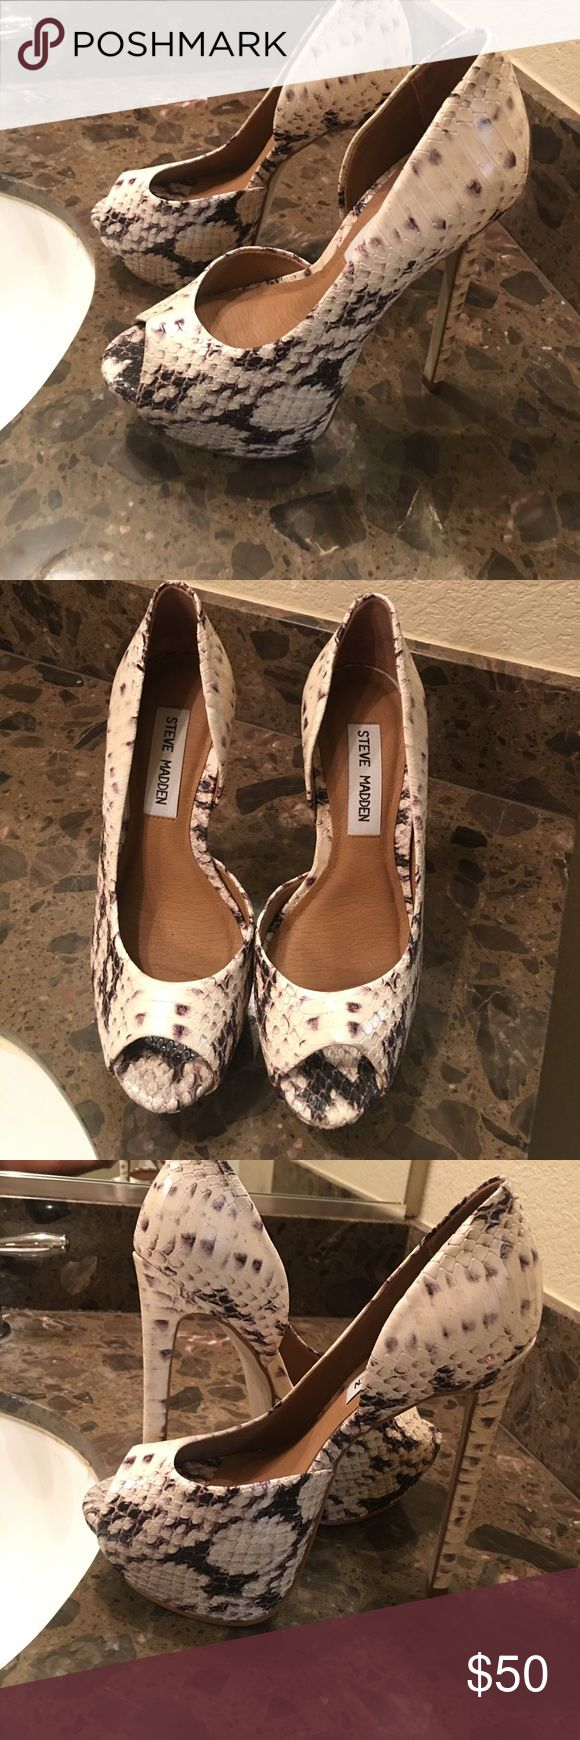 Steve Madden shoes Gently used, size 5.5, black and white. Steve Madden Shoes Heels